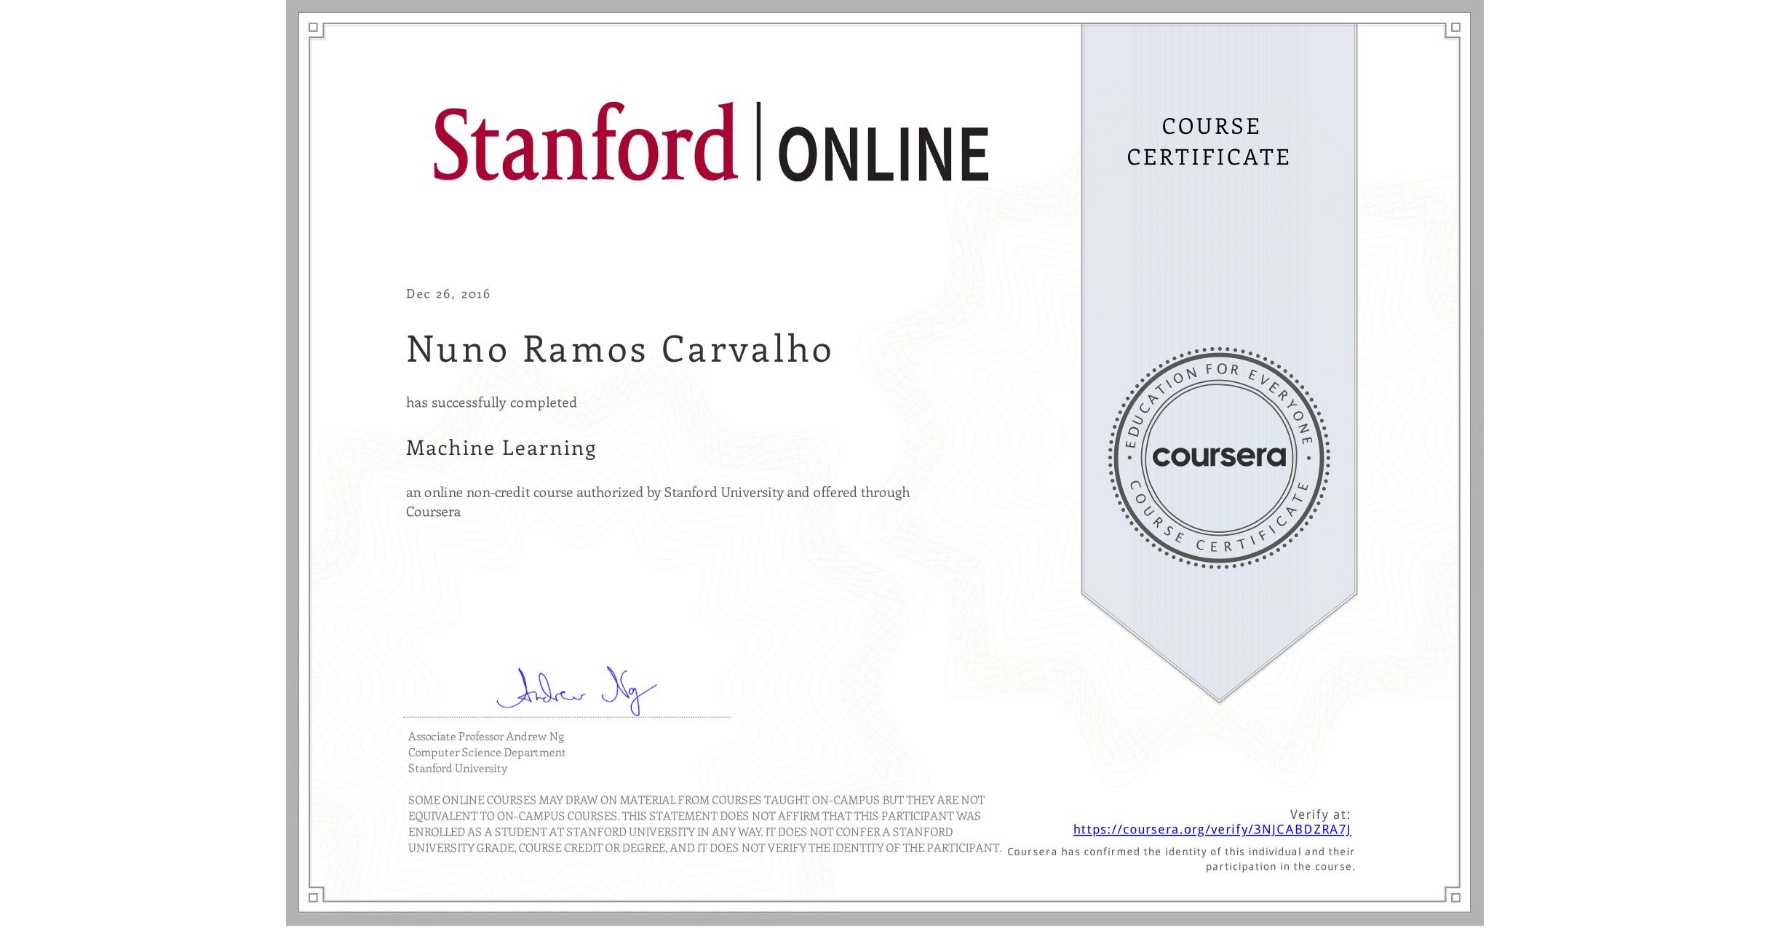 View certificate for Nuno Ramos Carvalho, Machine Learning, an online non-credit course authorized by Stanford University and offered through Coursera